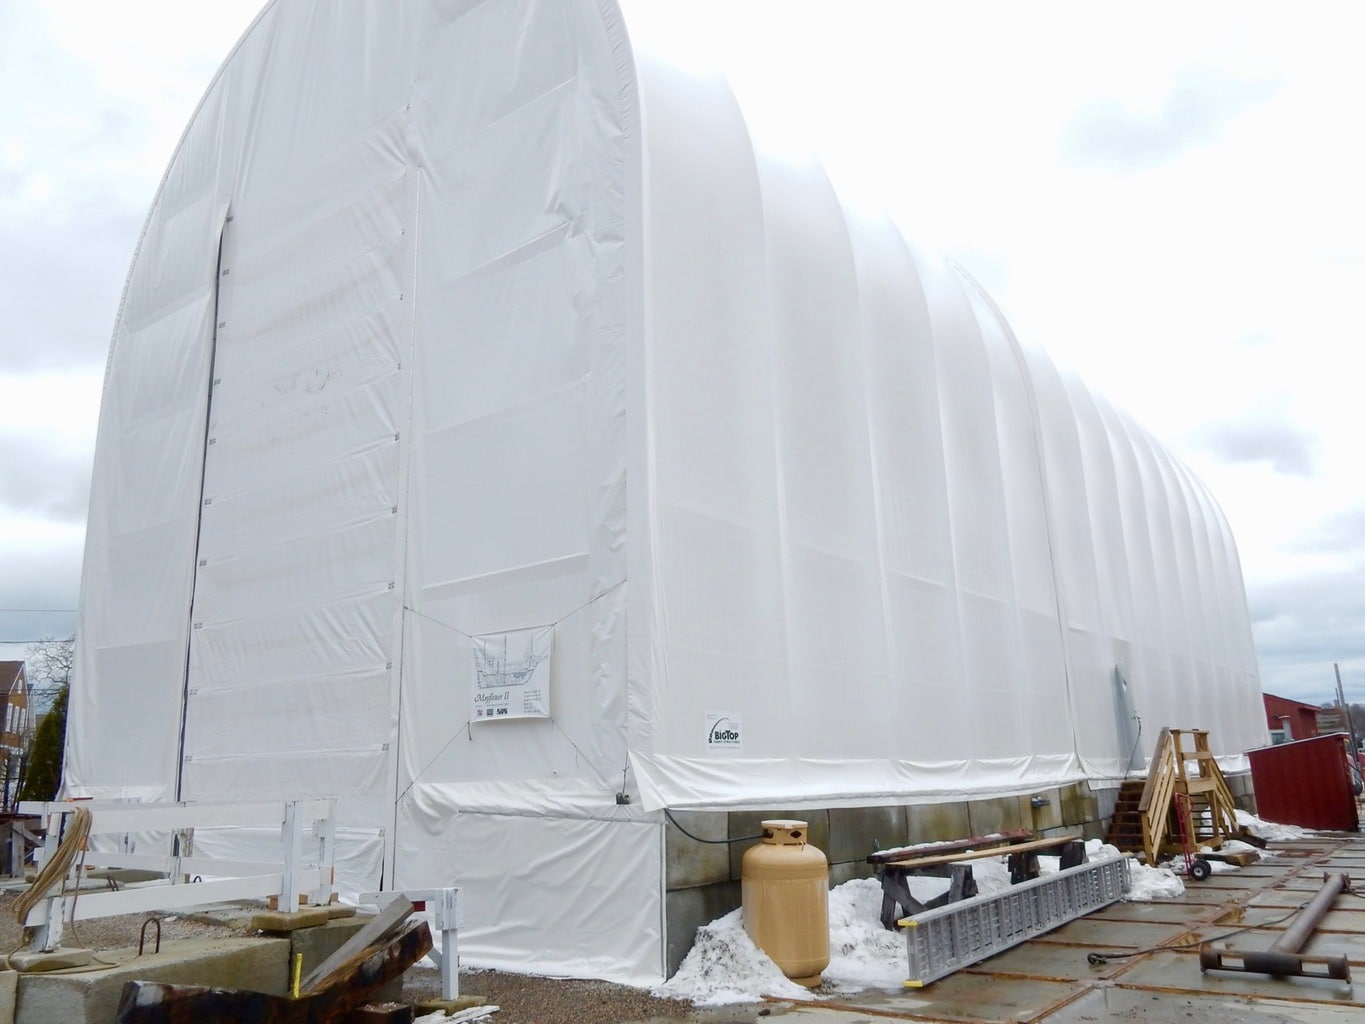 Tent built to house Mayflower II on dry dock at Mystic Seaport CT